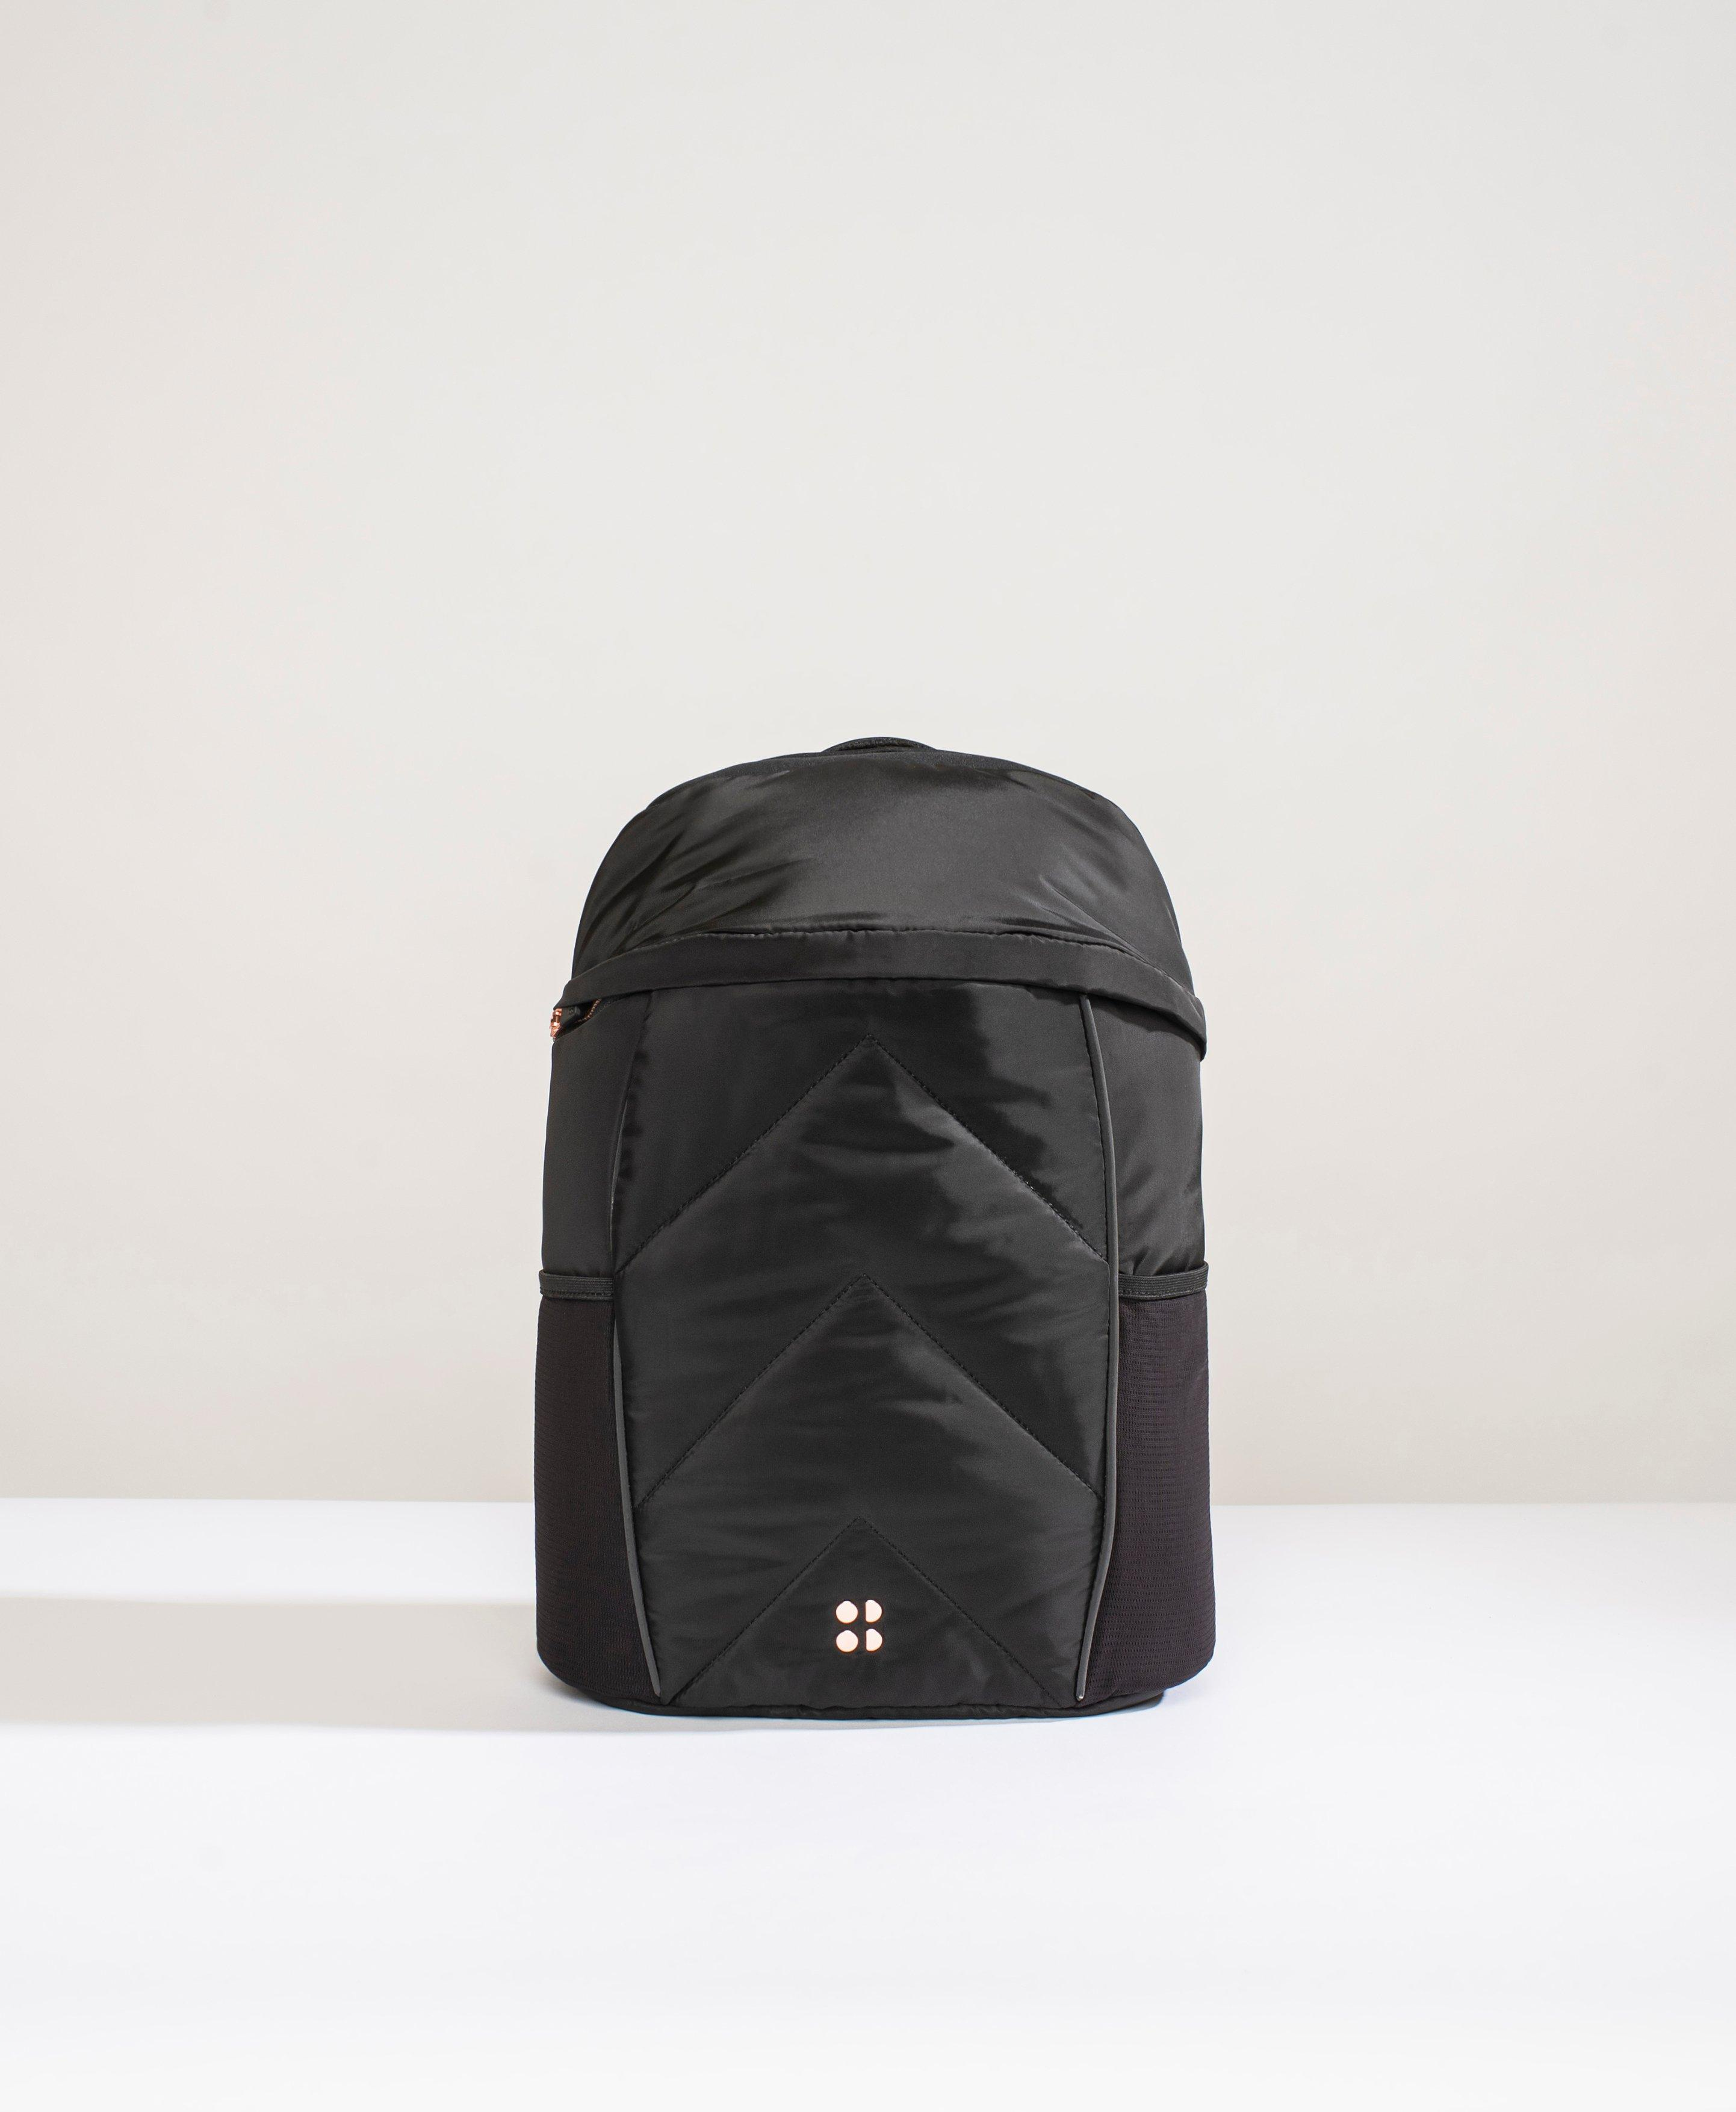 A running backpack that ticks all the boxes. In a sleek, lightweight design, this features adjustable padded shoulder straps and a secure chest and hip strap. Stay hydrated on the go with the inbuilt hydration pocket and keep everything in place with multiple internal and external compartments including a dry pocket, invisible pocket and mesh water bottle holders.